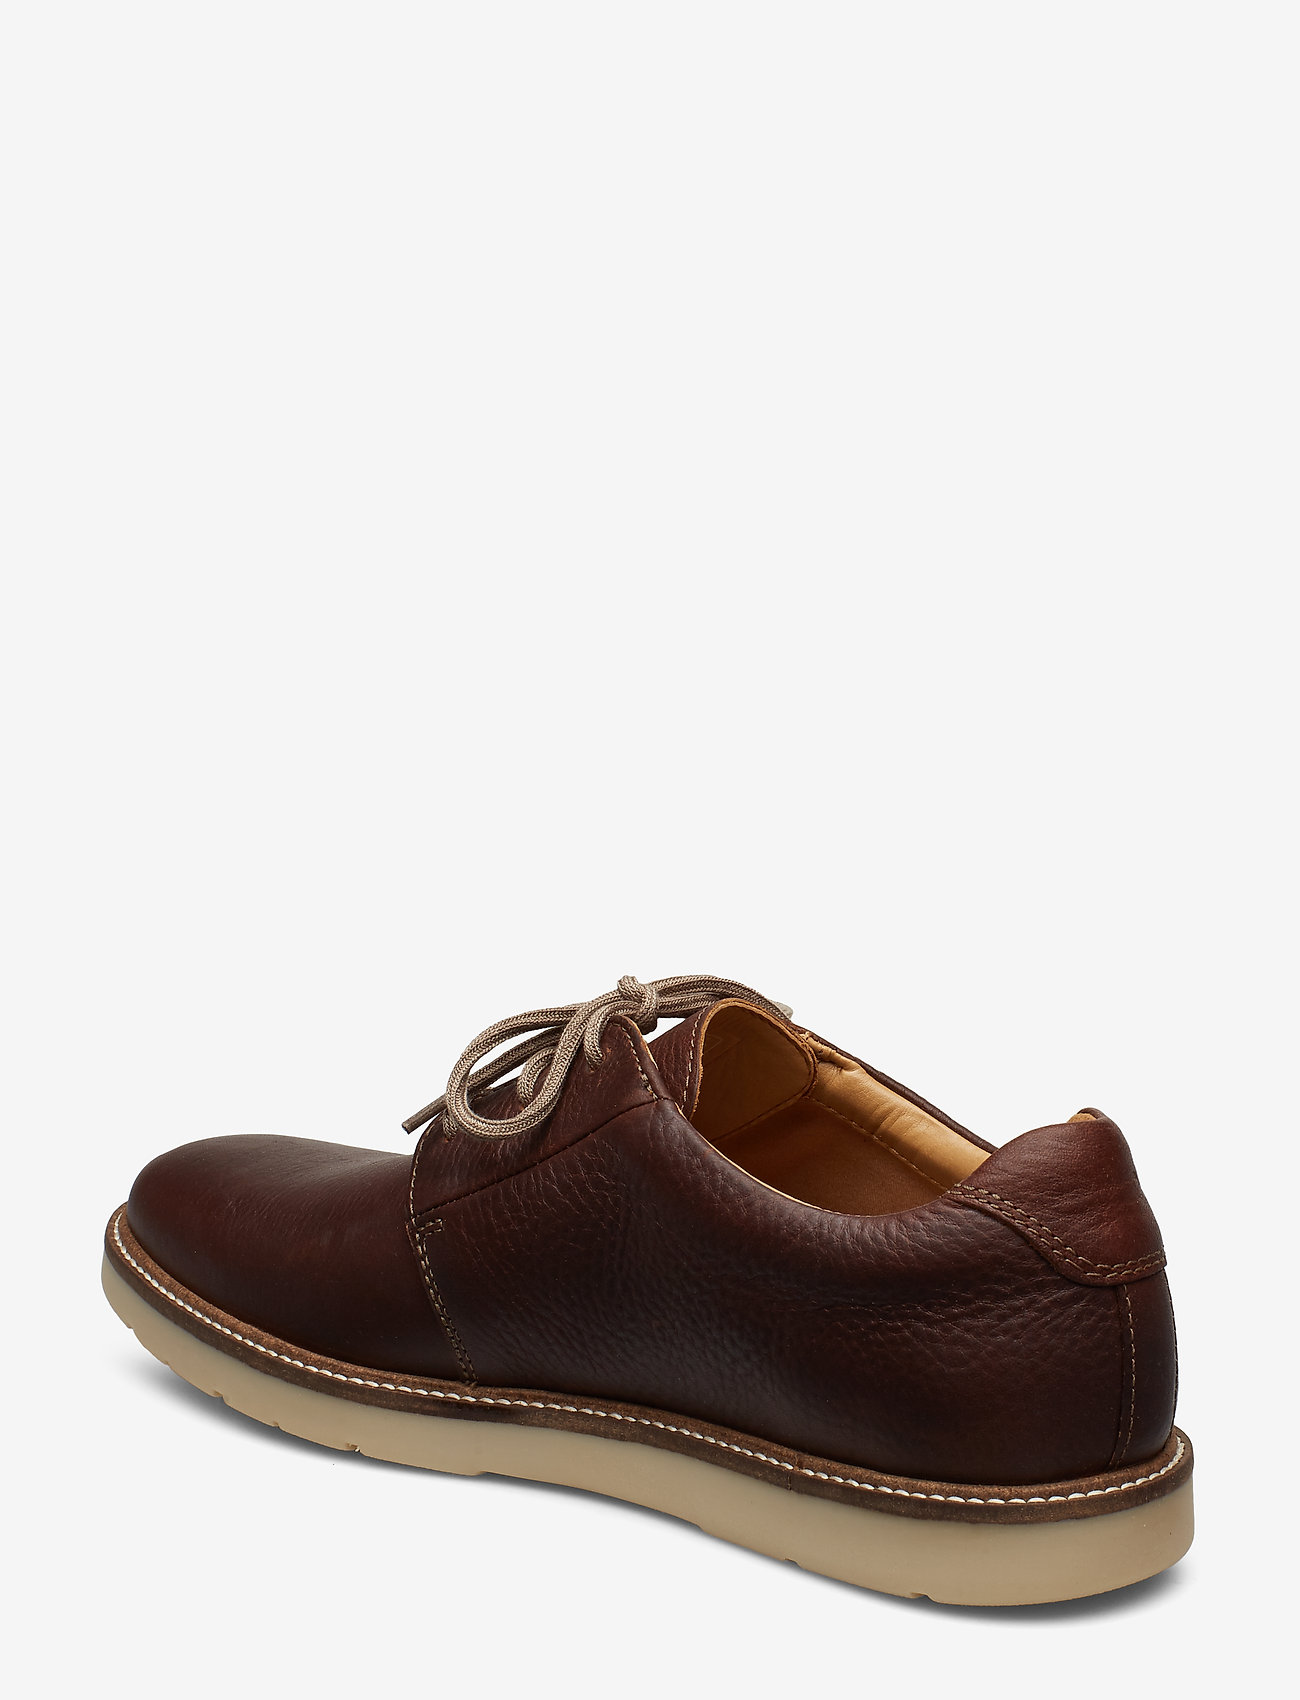 Grandin Plain (Tan Leather) - Clarks